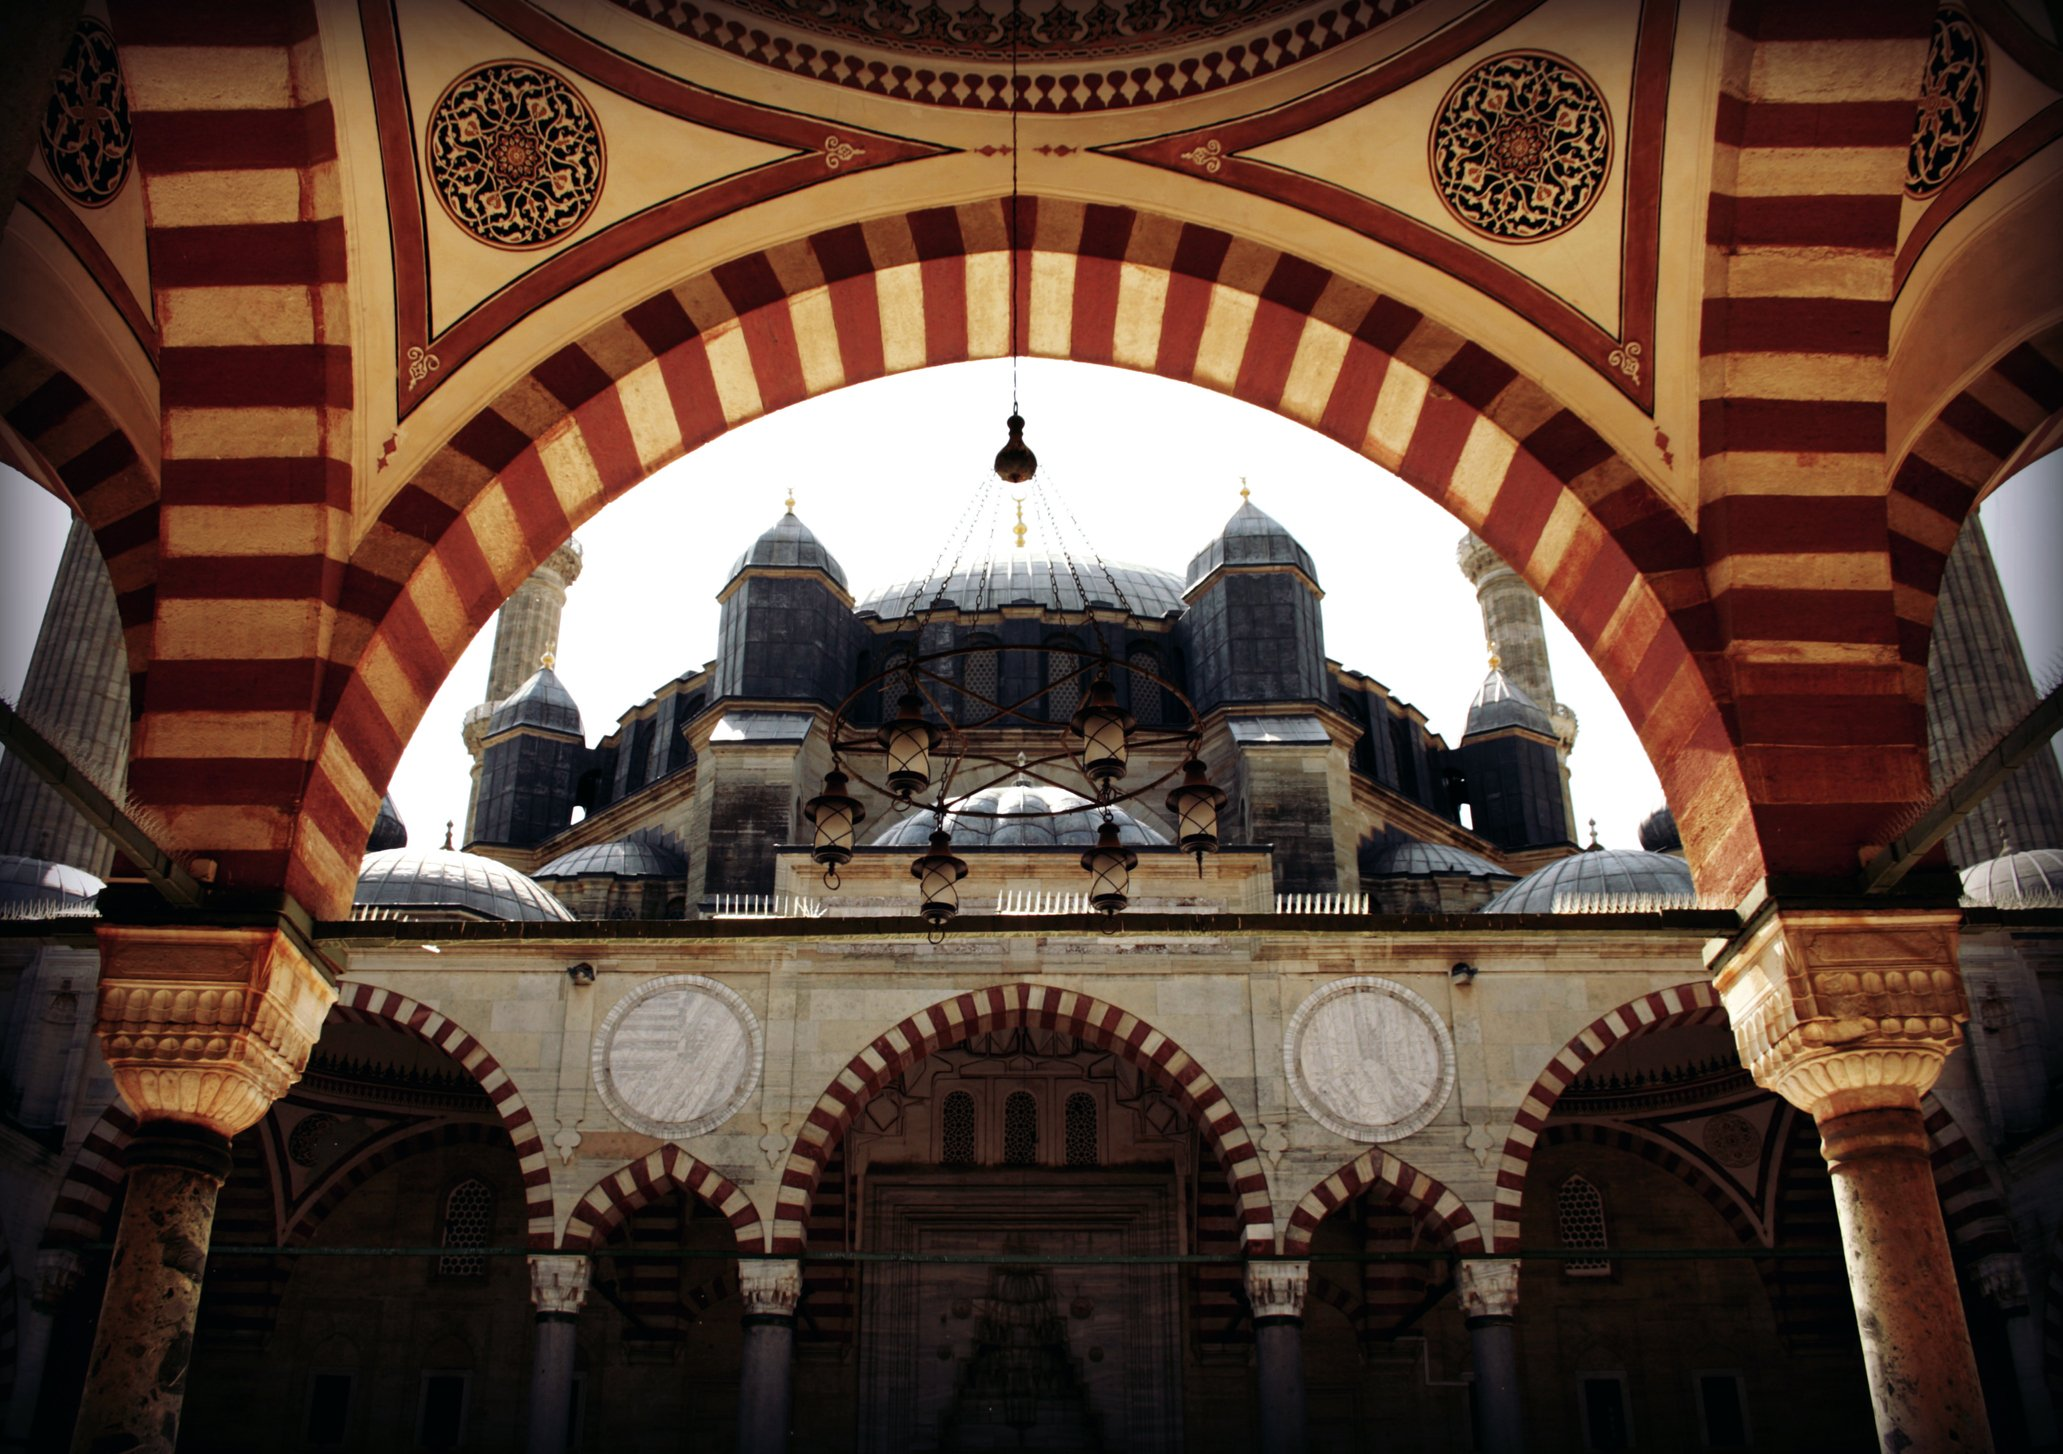 Built with cut stones, the mosque spreads over 2,475 square meters with a 1,620-square-meter interior. (iStock Photo)